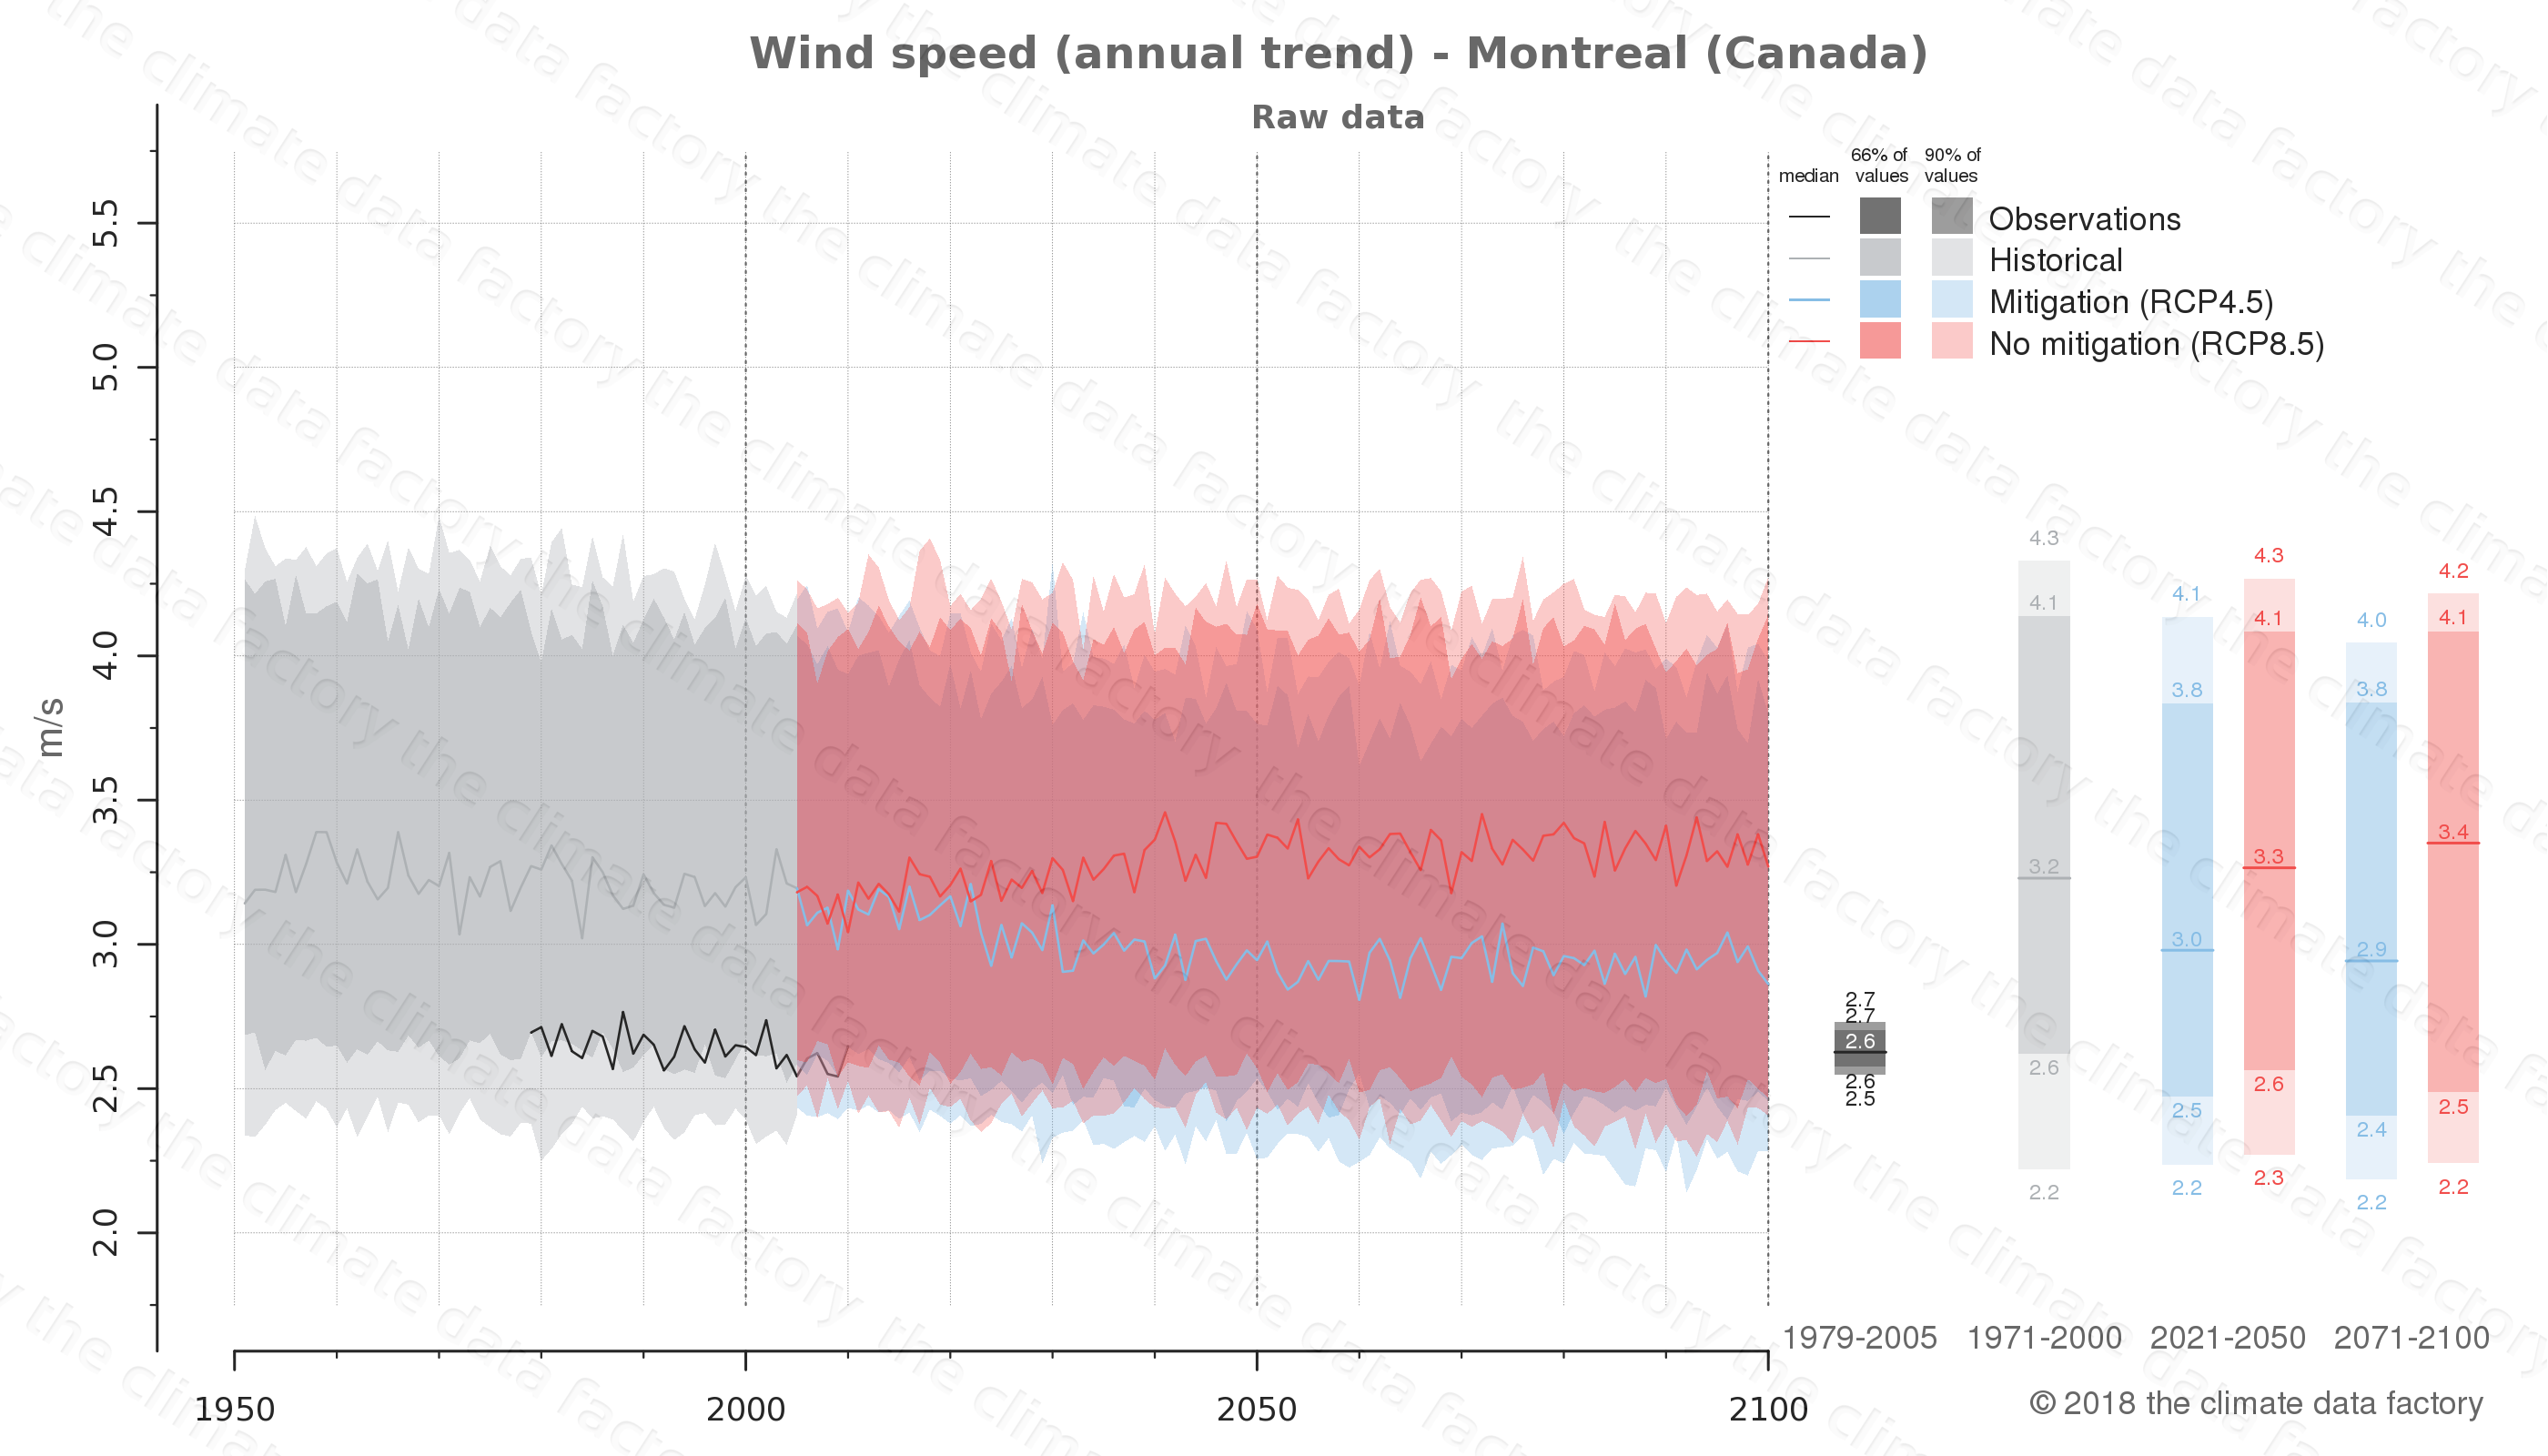 climate change data policy adaptation climate graph city data wind-speed montreal canada